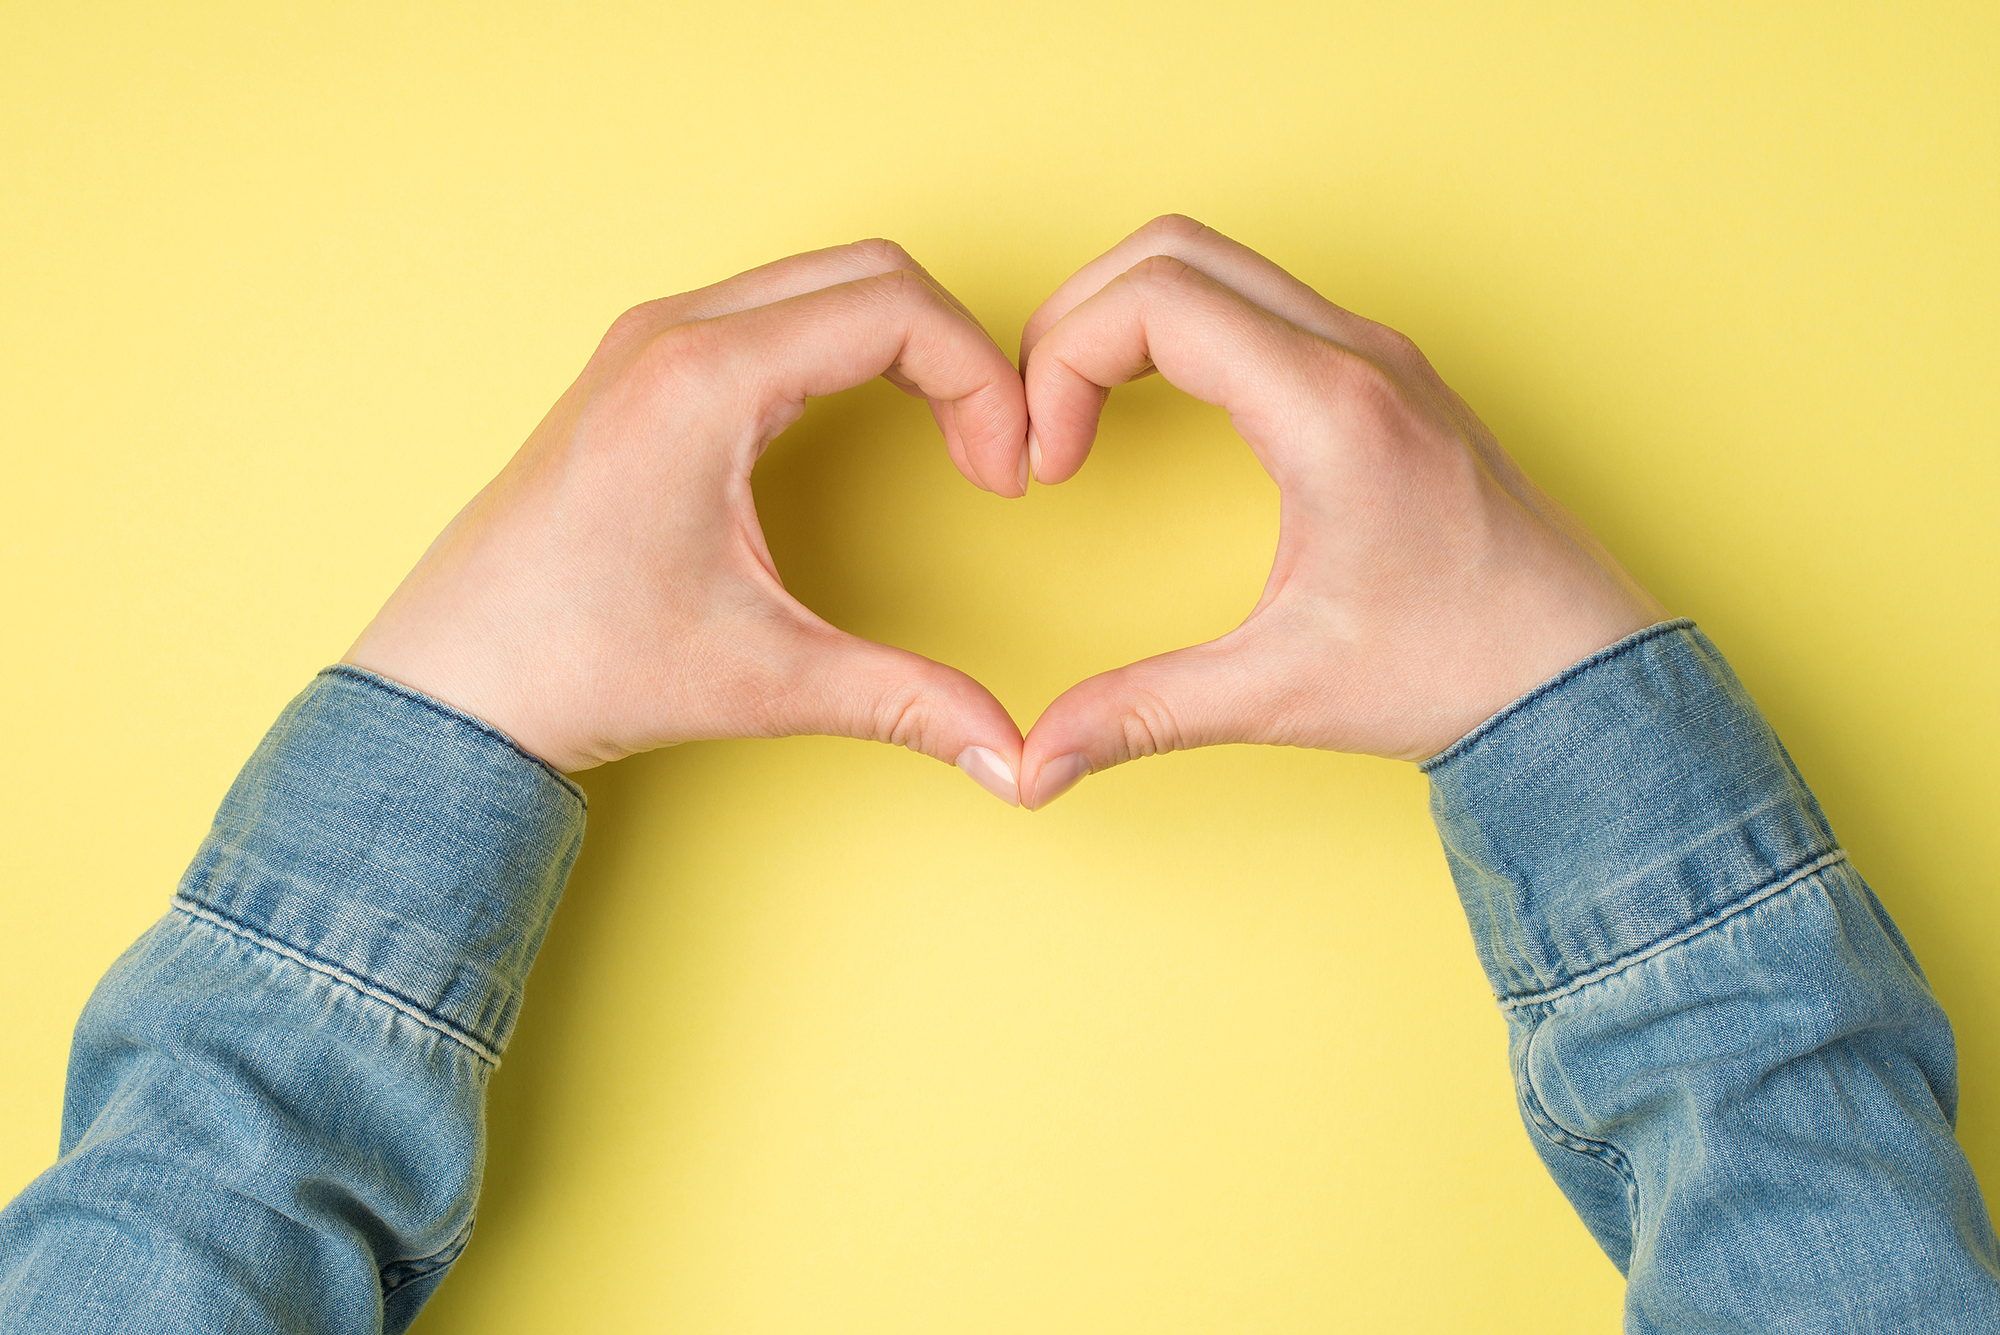 First person top view photo of woman's hands showing heart sign with fingers on isolated yellow background with copyspace